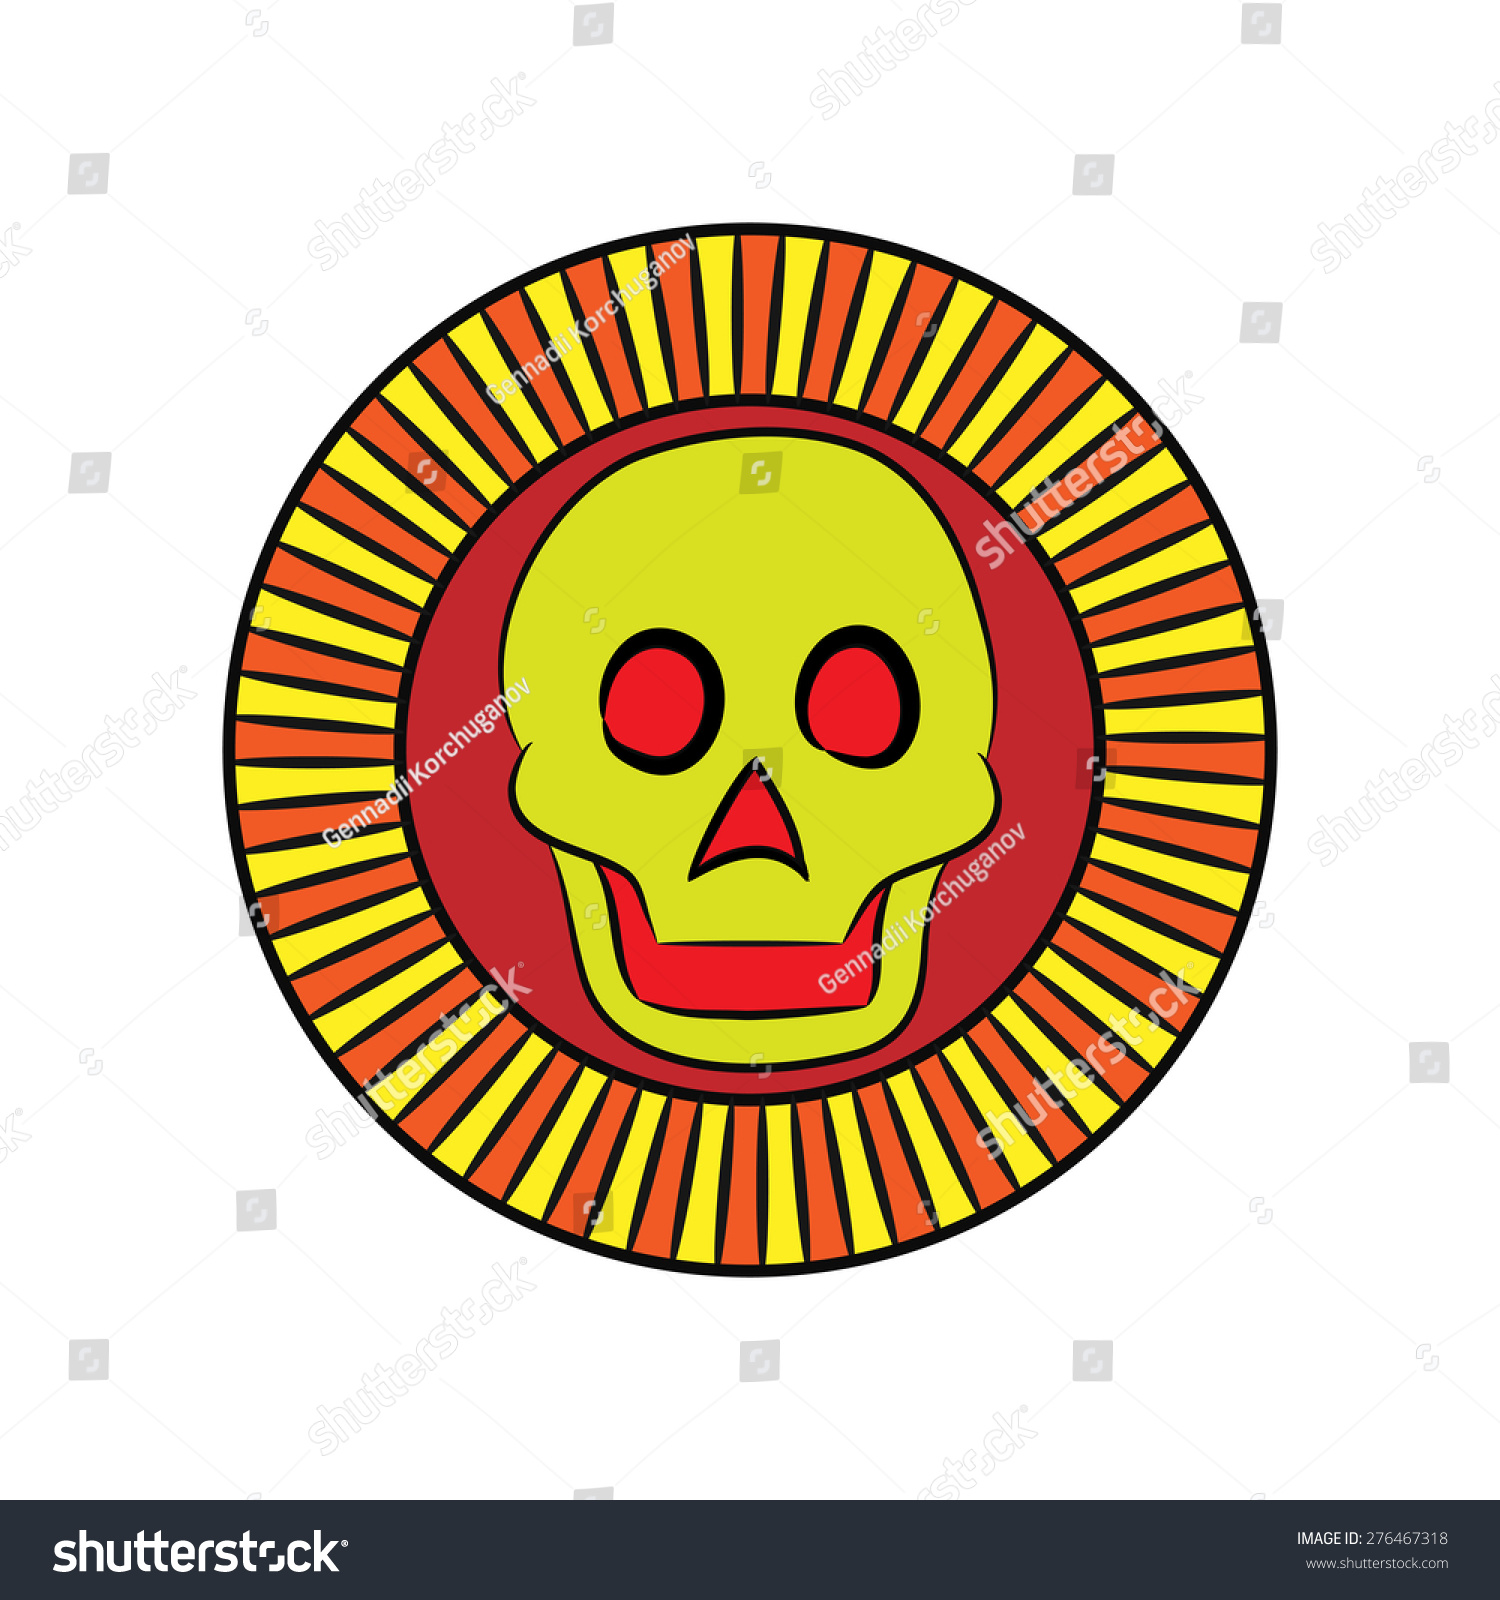 Symbol ancient aztecs sun death ancient stock vector 276467318 the symbol of the ancient aztecs the sun of death from ancient mexico biocorpaavc Images